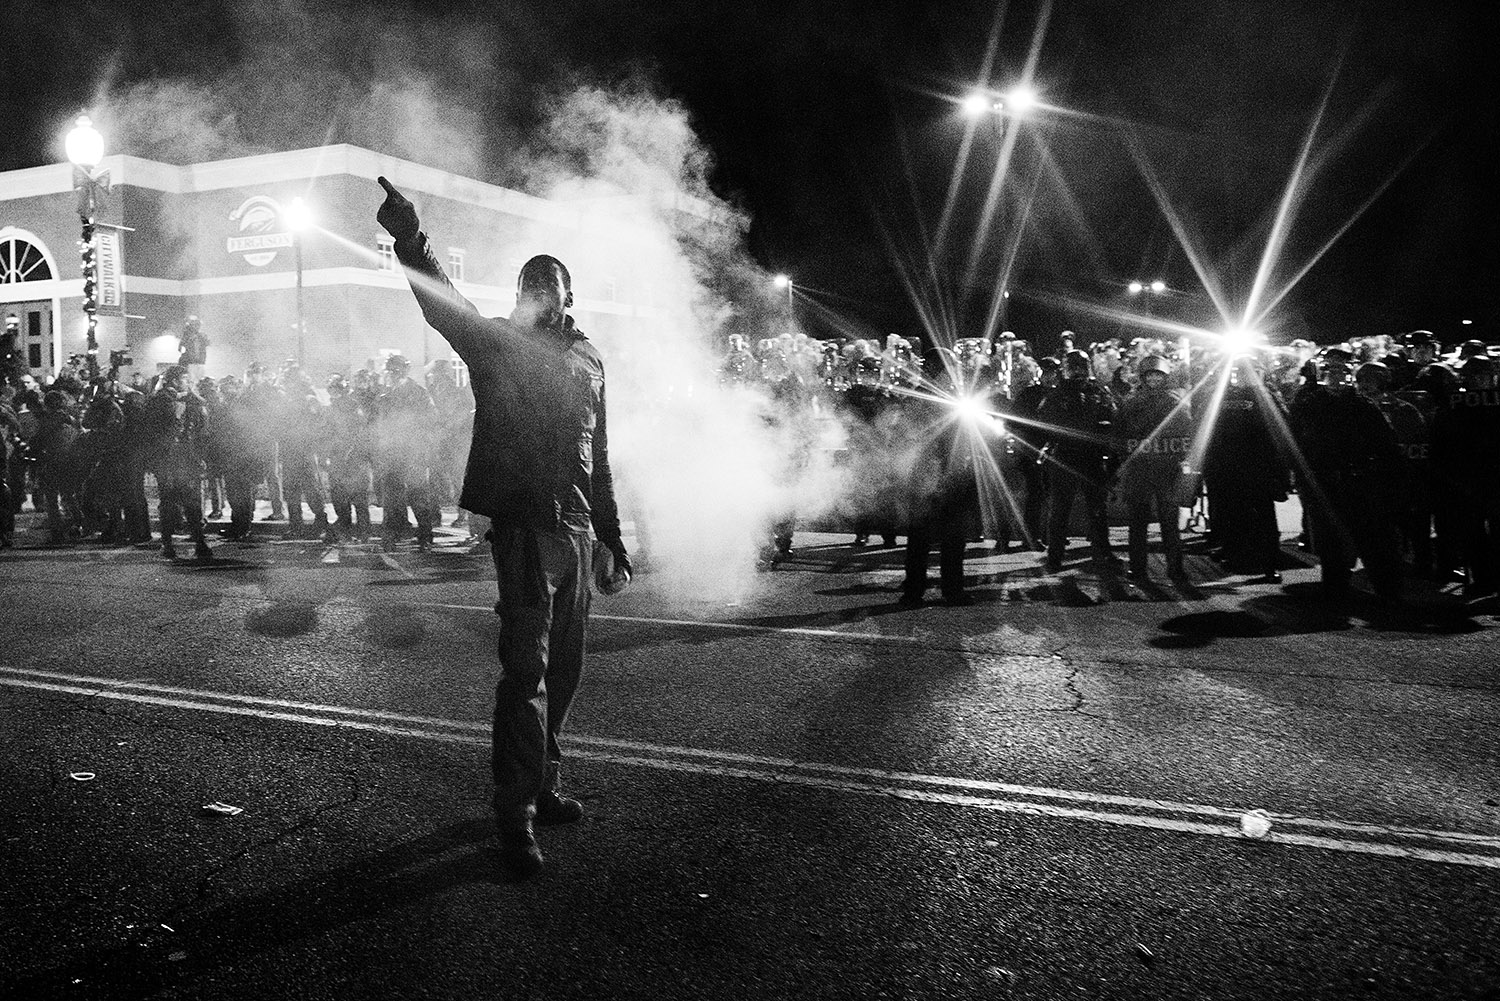 FERGUSON, MO - NOVEMBER 25: A protester points out the origin of a smoke bomb thrown at the police and national guard formations protecting the Ferguson police department, the night after riots rocked the suburb following the announcement of the grand jury's decision not to indict white police officer Darren Wilson in the death of unarmed black teen Michael Brown. Many protesters sought to deescalate violent confrontations with the police. (Photo by Benjamin Lowy/Reportage by Getty Images)